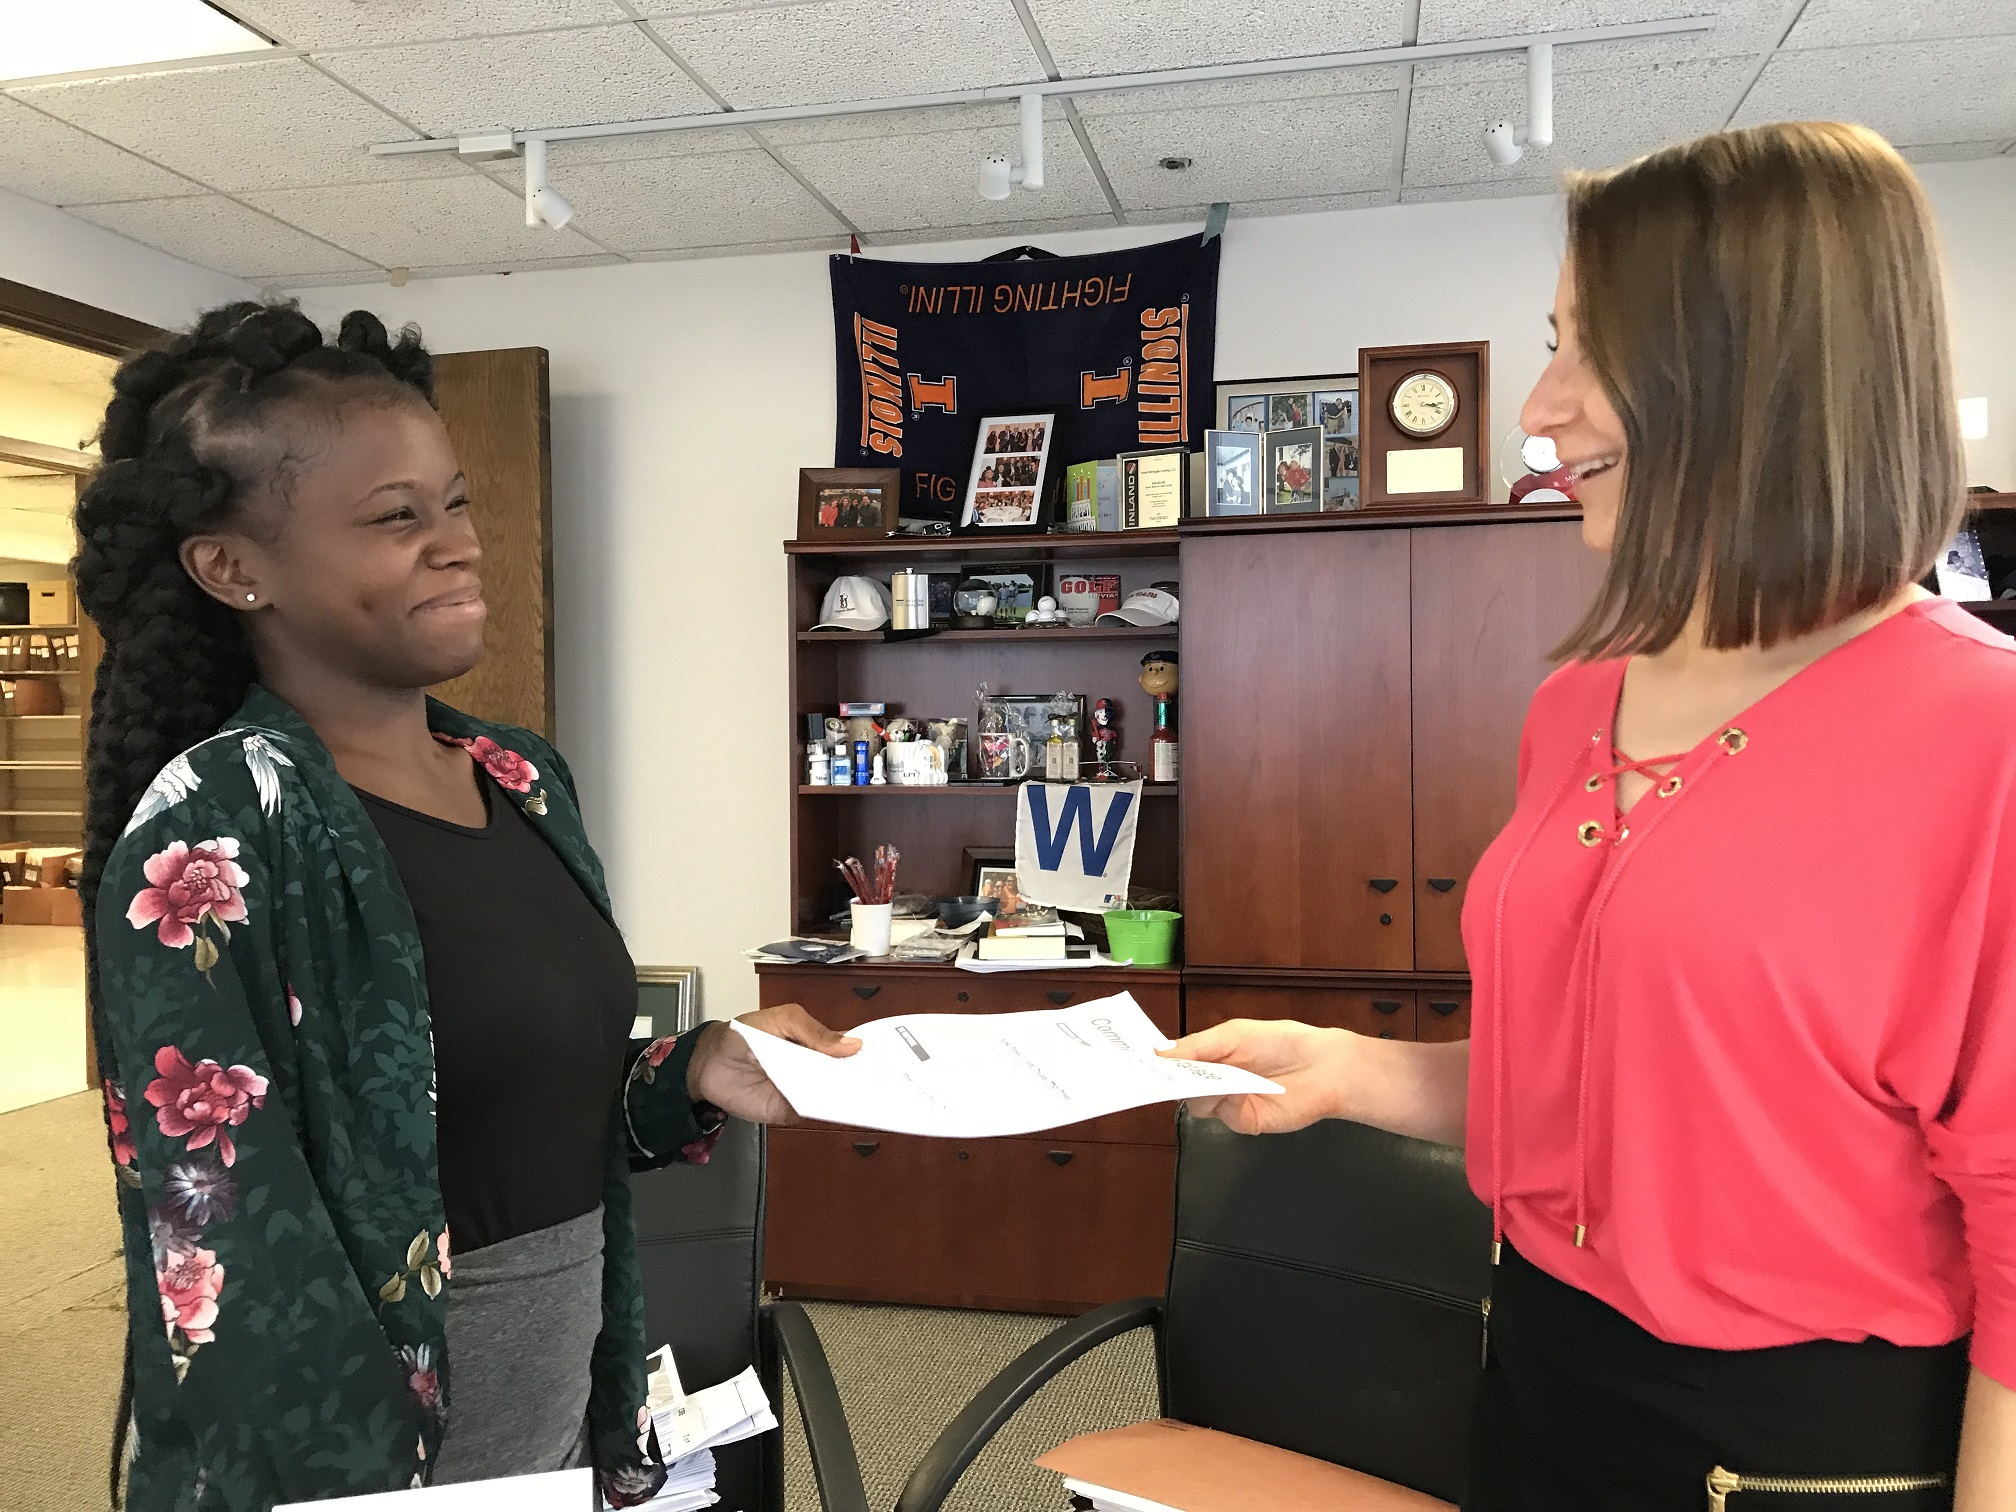 Anna Kuta and Chicago All-Stars Project's Tynita King collaborate on a marketing project during her 2018 Development School for Youth summer internship. For more information on Chicago All Stars Project, Inc., please visit: https://allstars.org/locations/